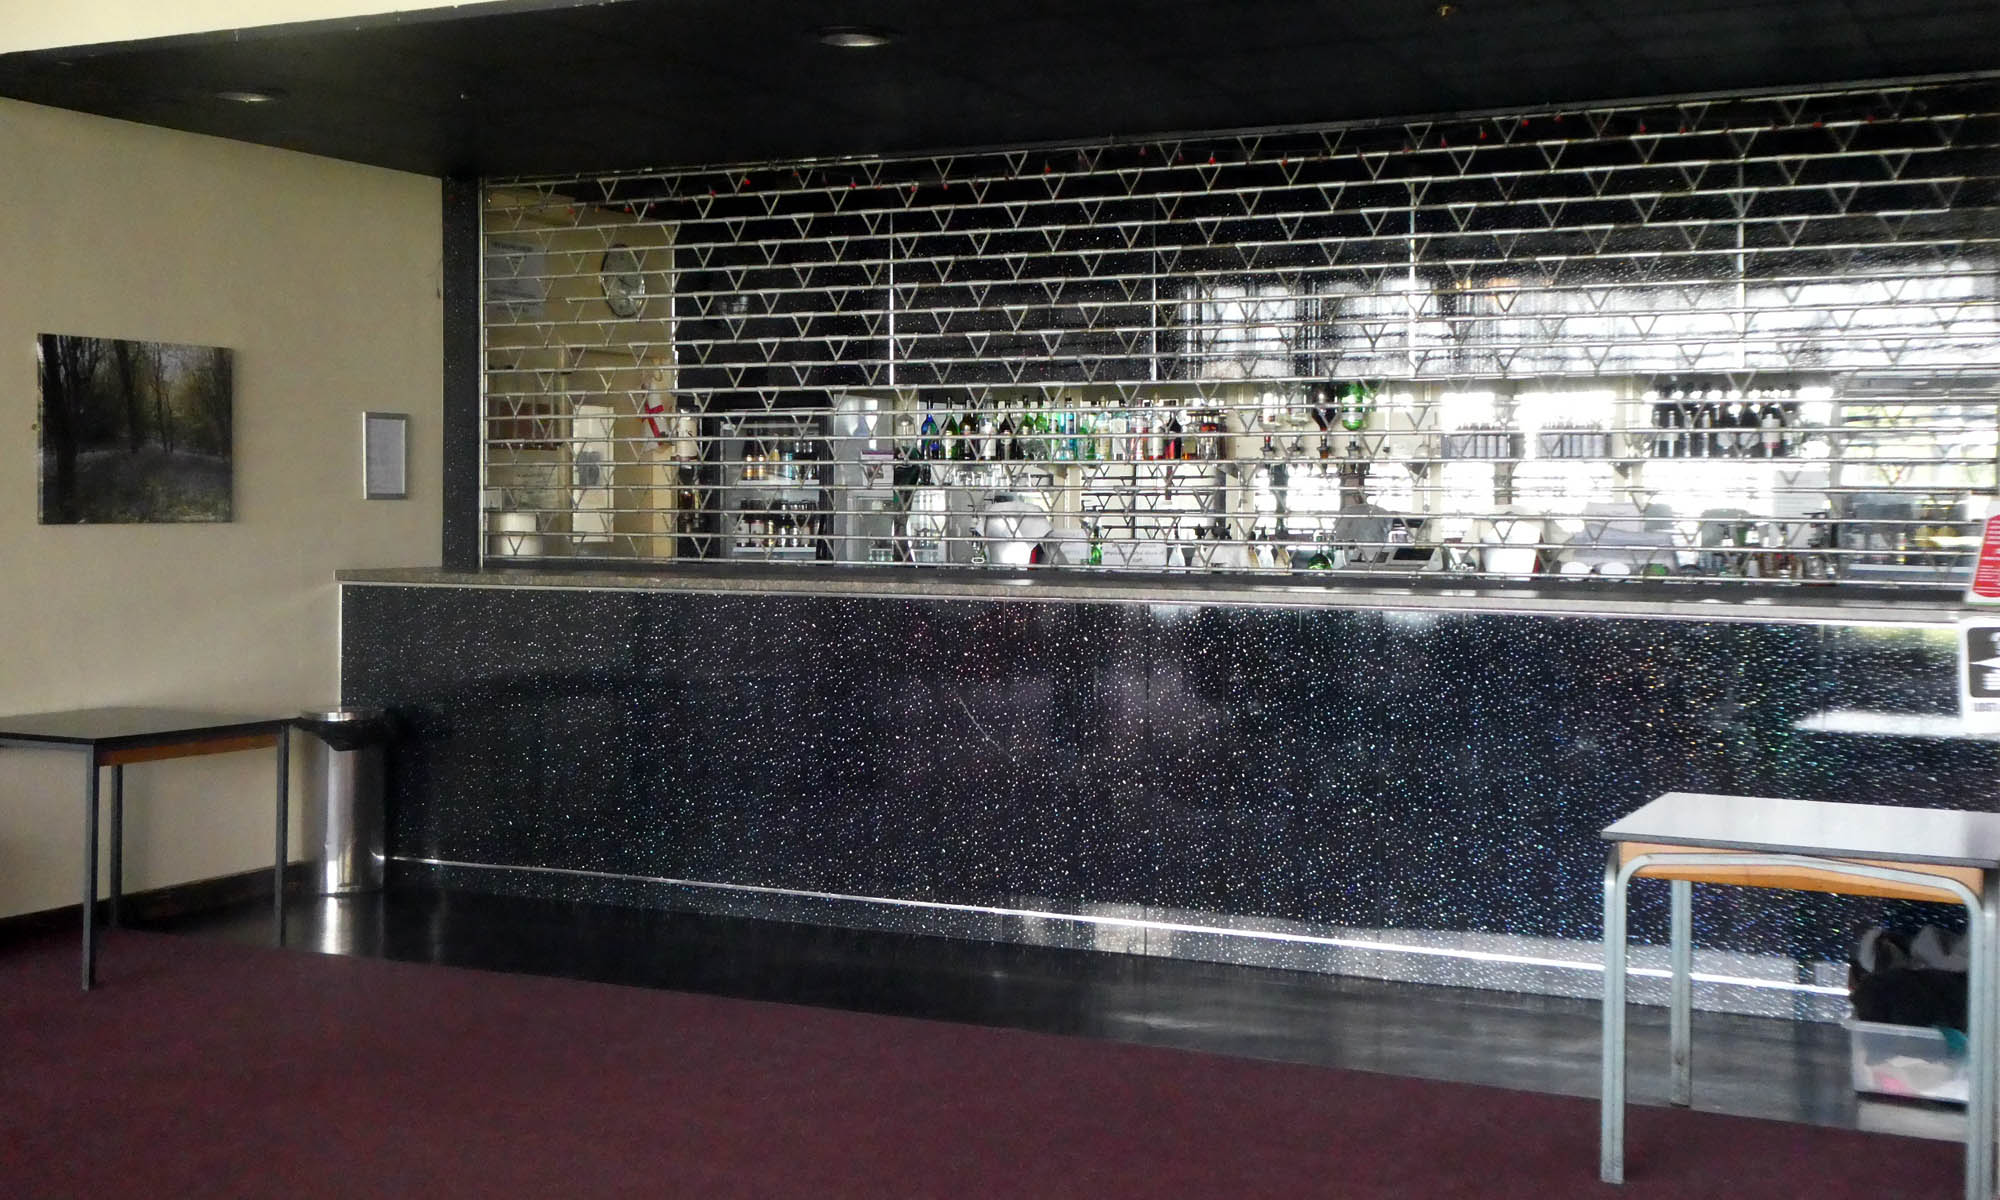 delphi centre sudbury upper bar